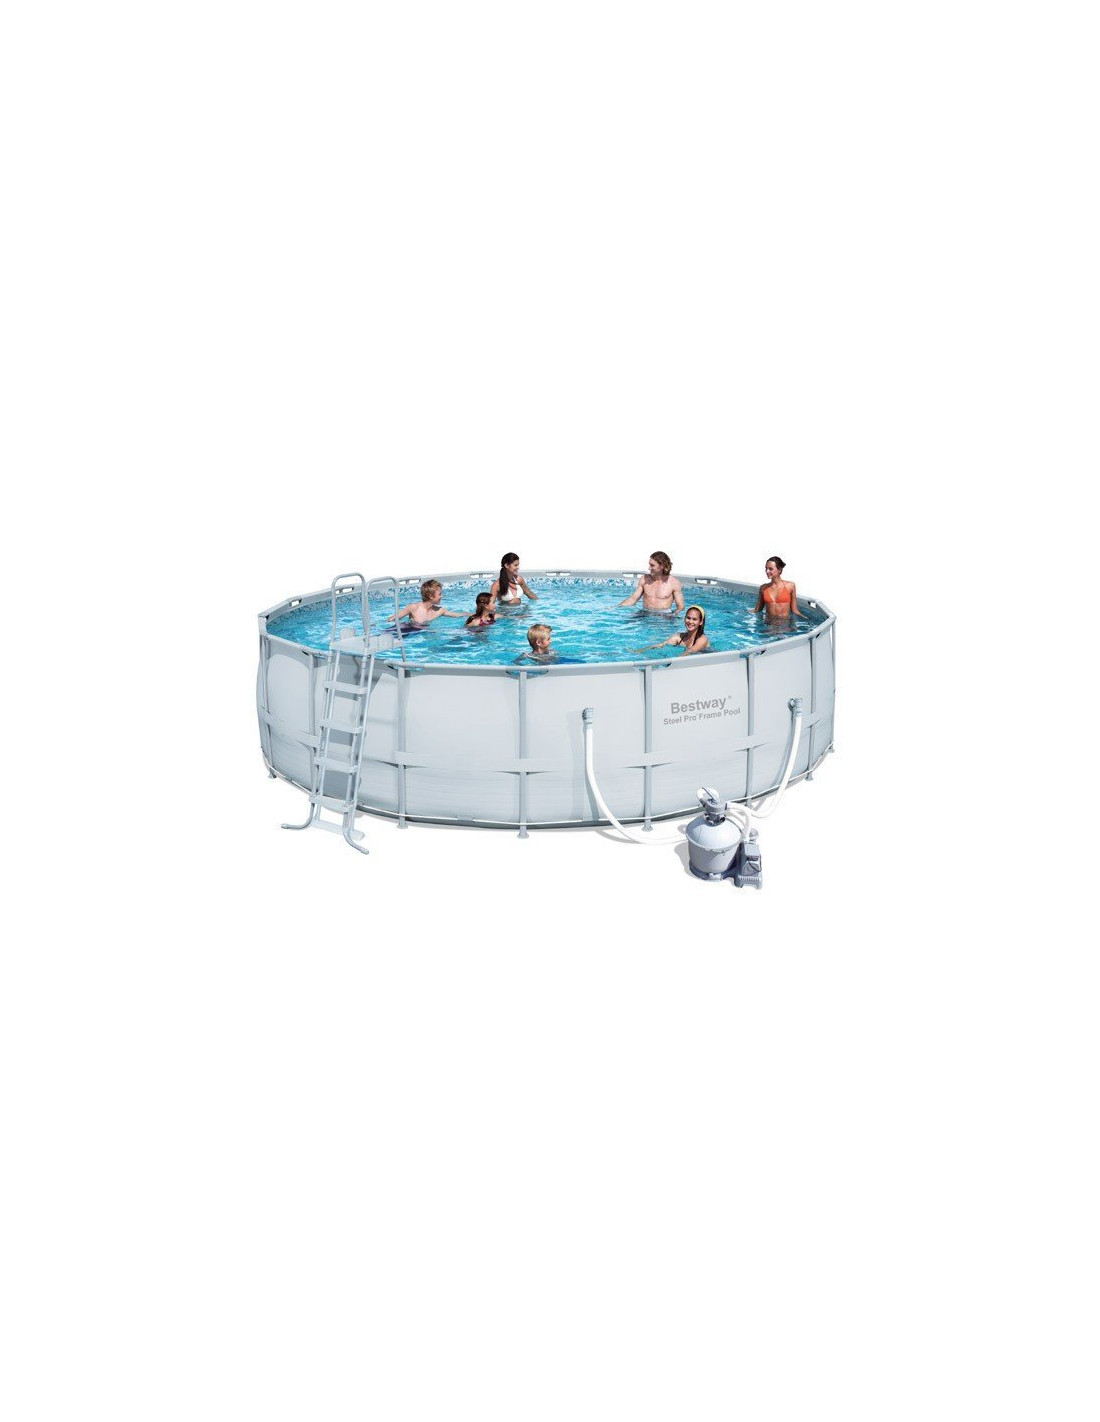 Piscine tubulaire bestway ronde couleur grise filtration for Filtre sable piscine